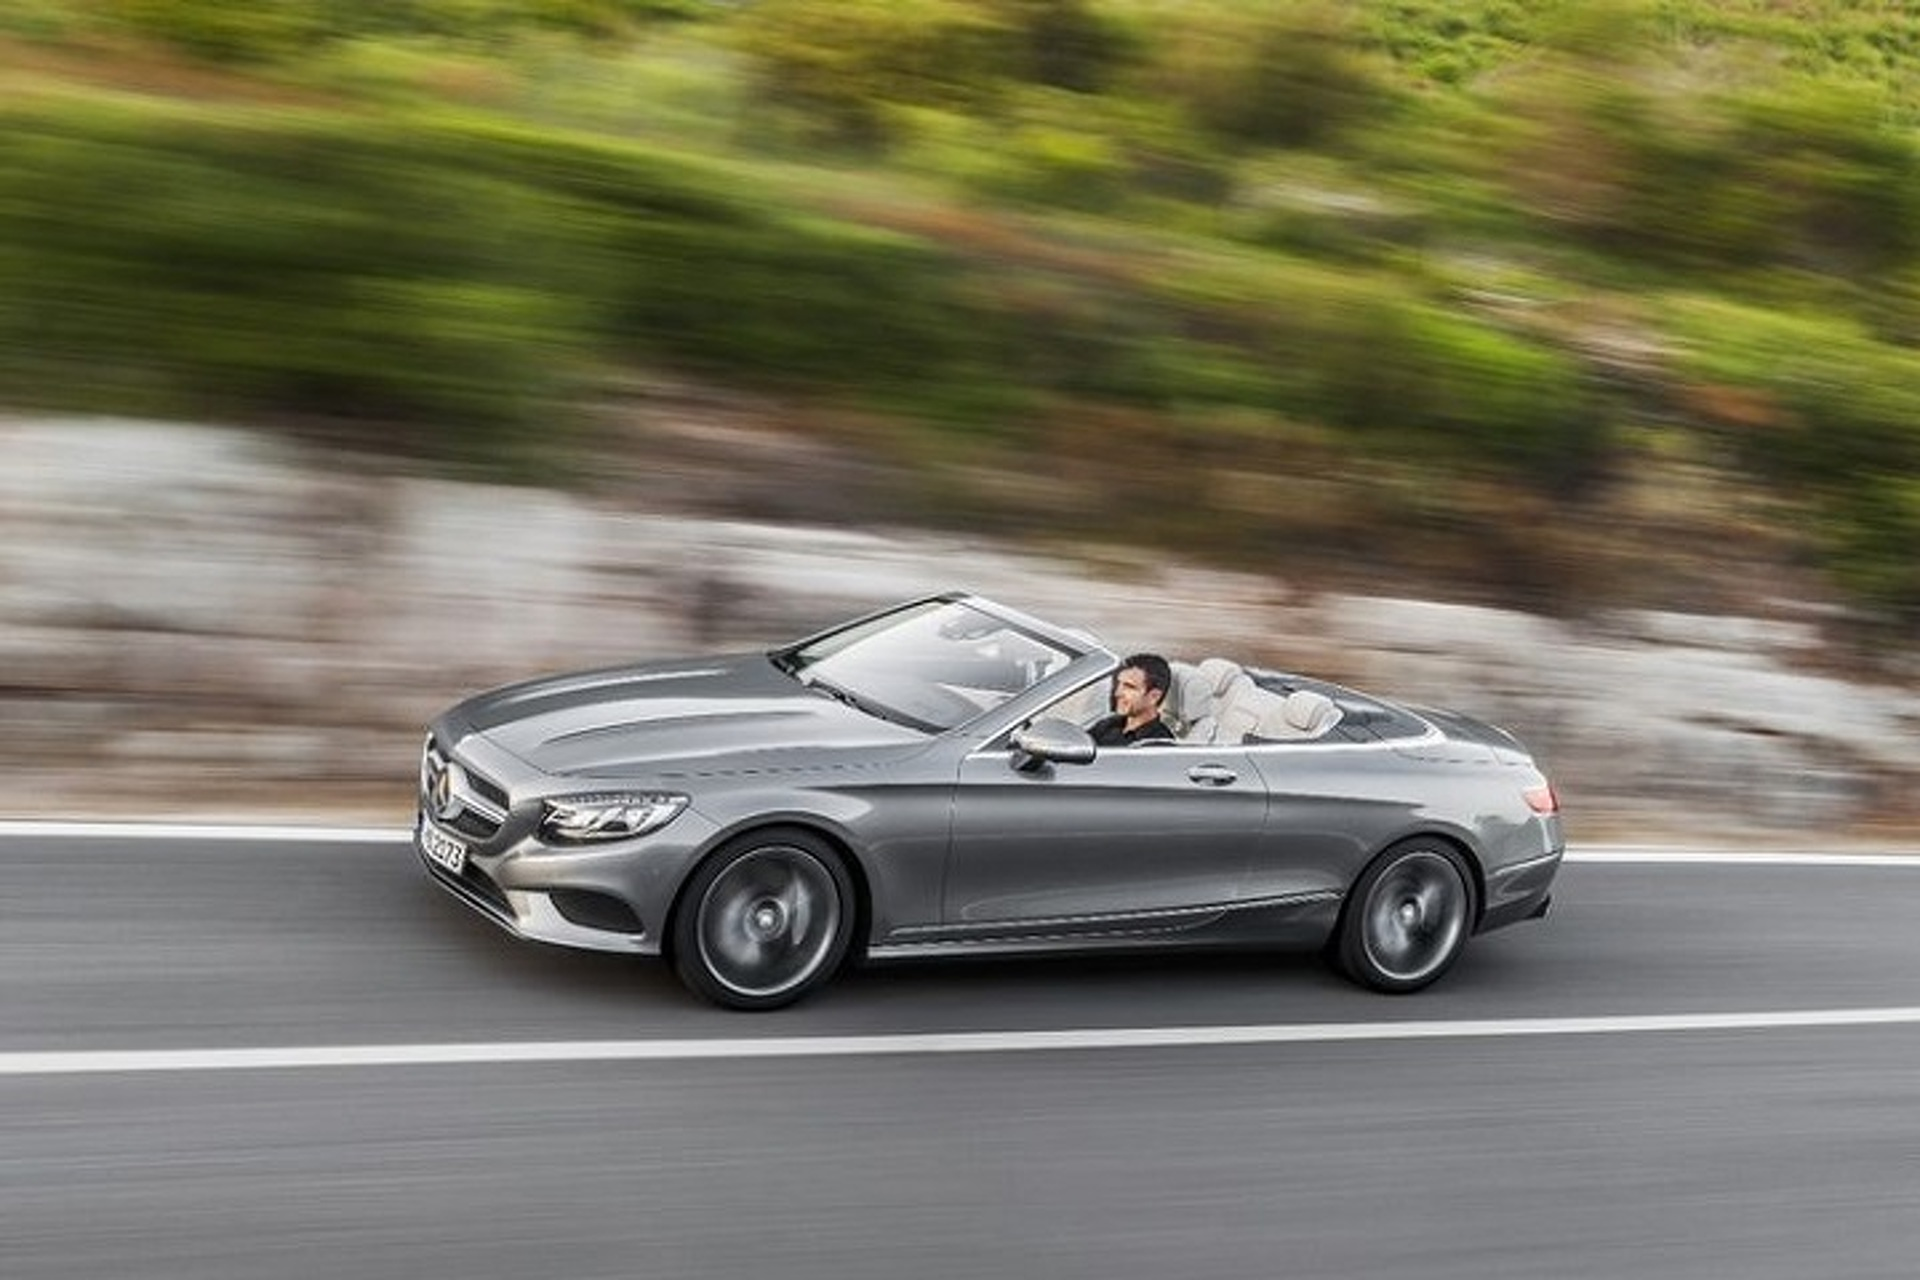 Mercedes S Class Cabriolet Is The Land Yacht We Ve Been Waiting For